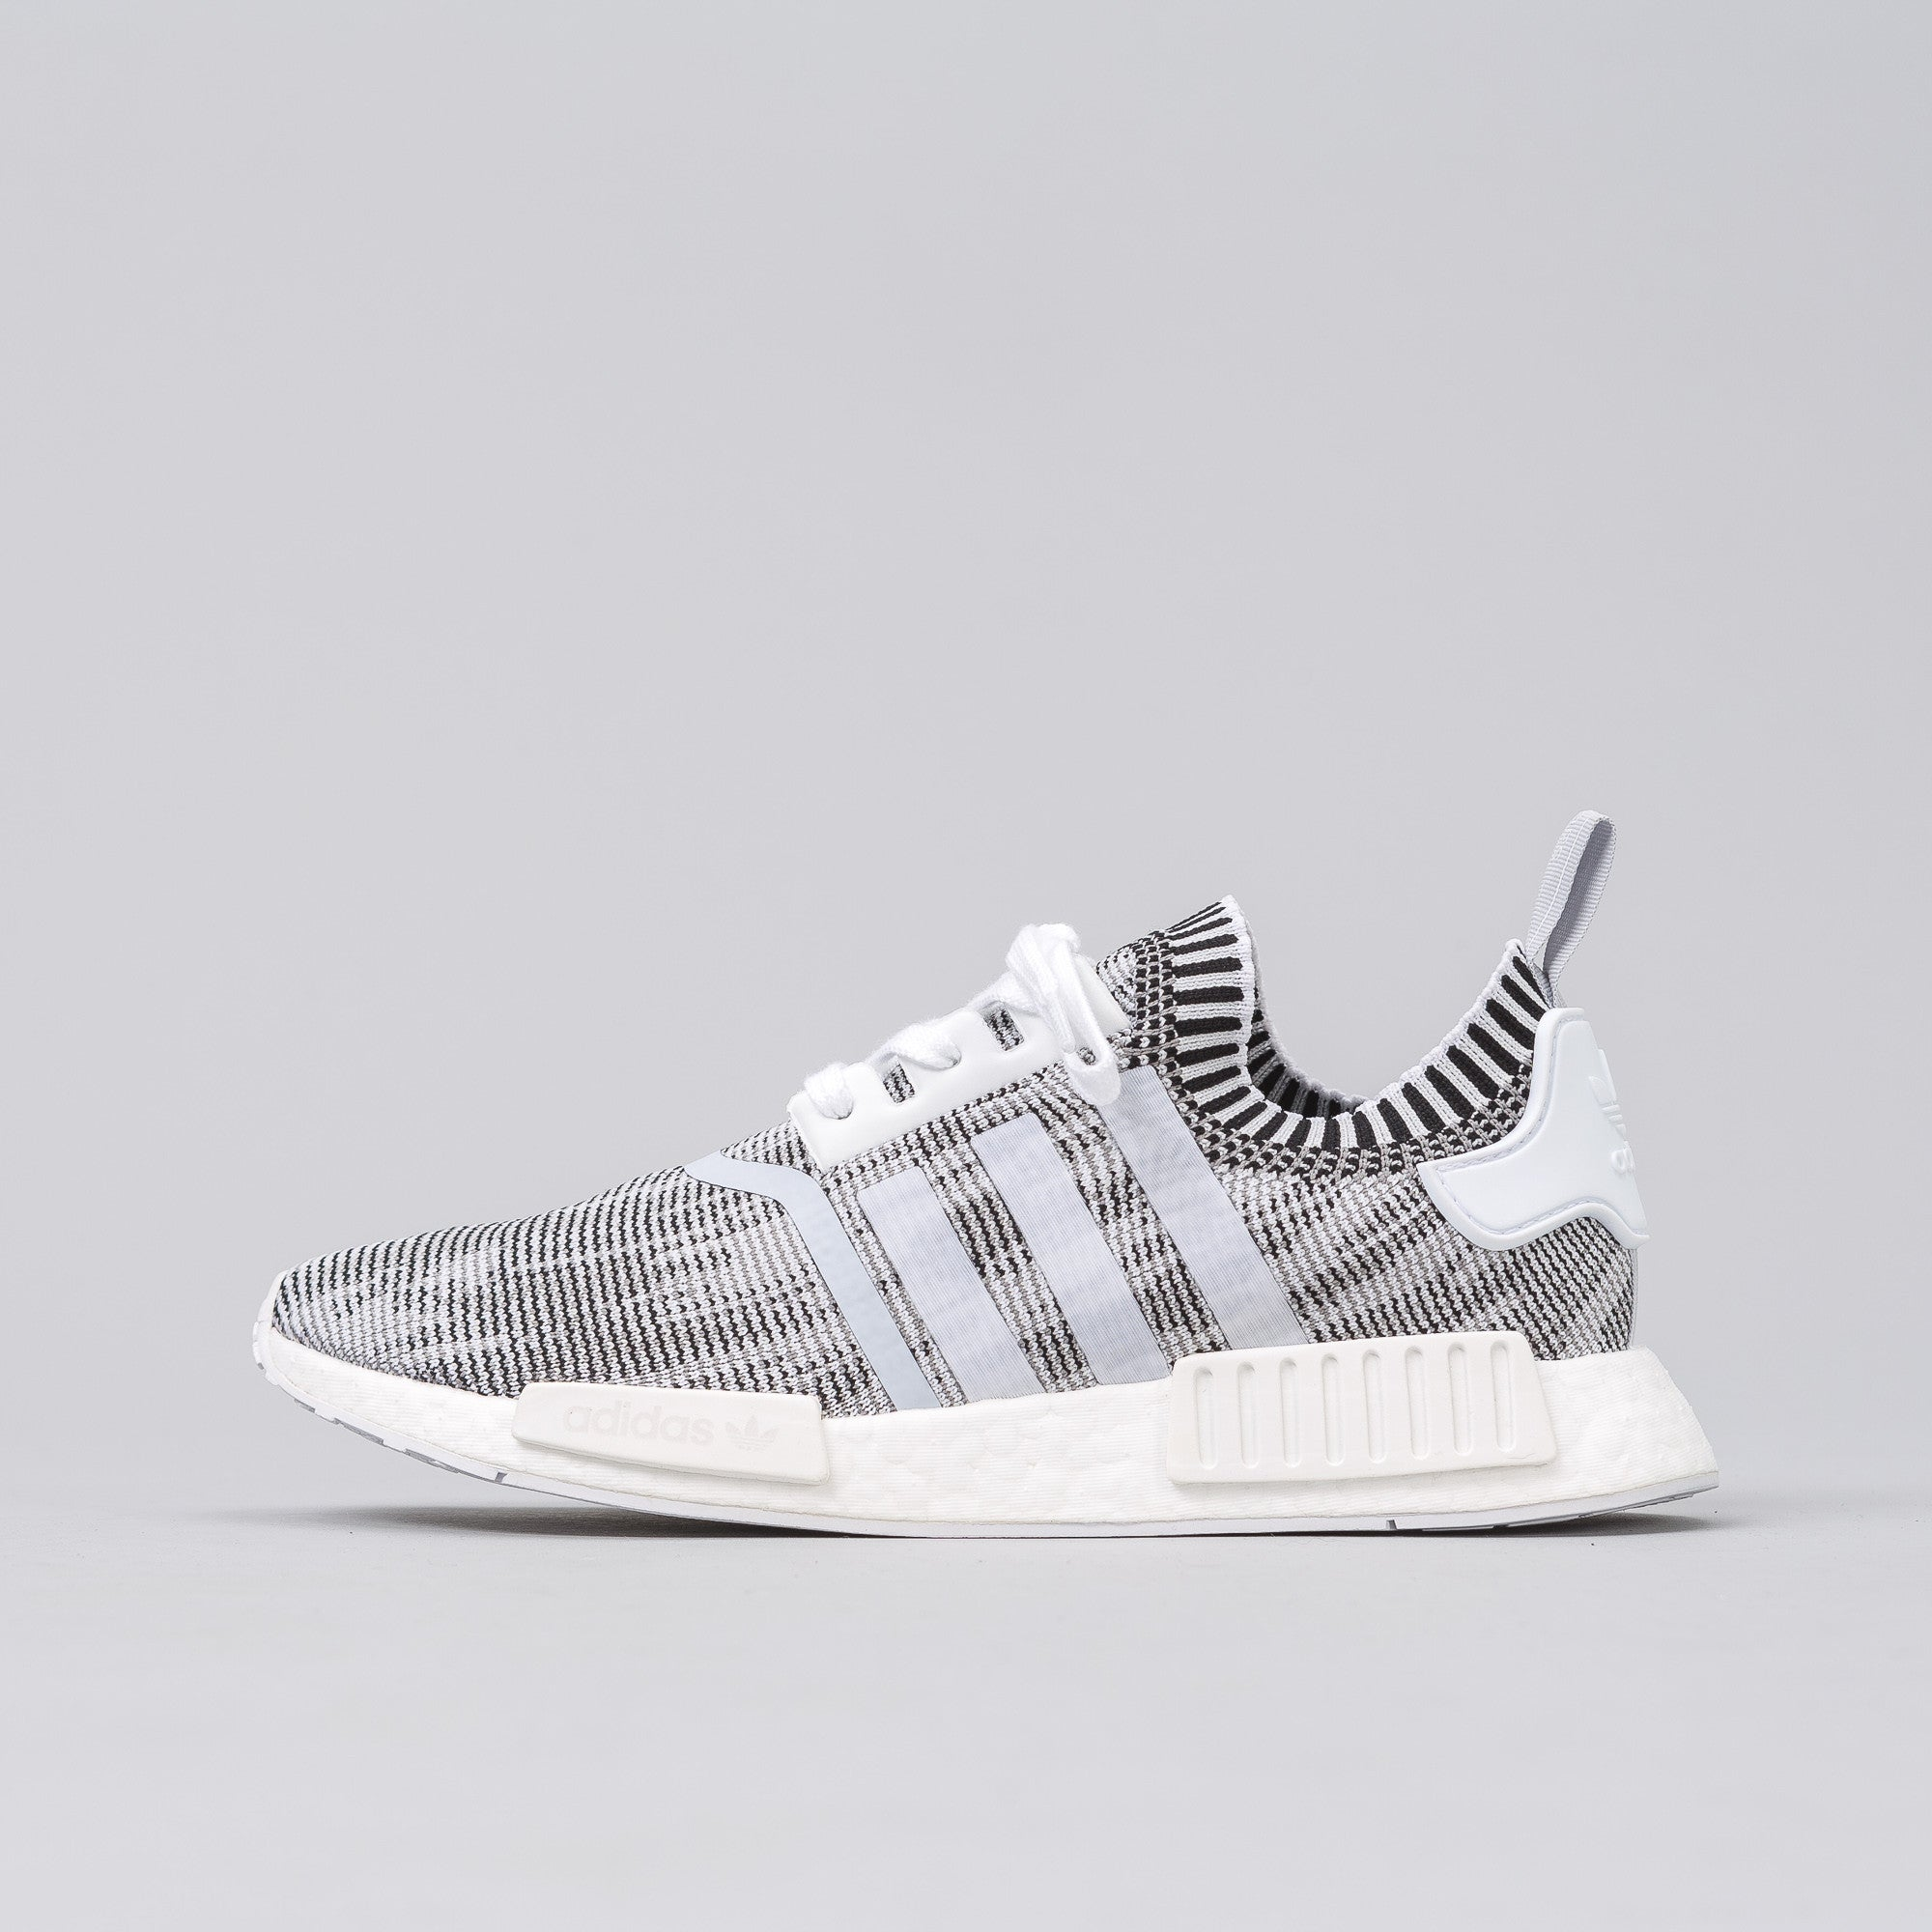 Cheap Adidas NMD HUMAN RACE Pharrell Williams BLUE US 7 & US 8 Klekt